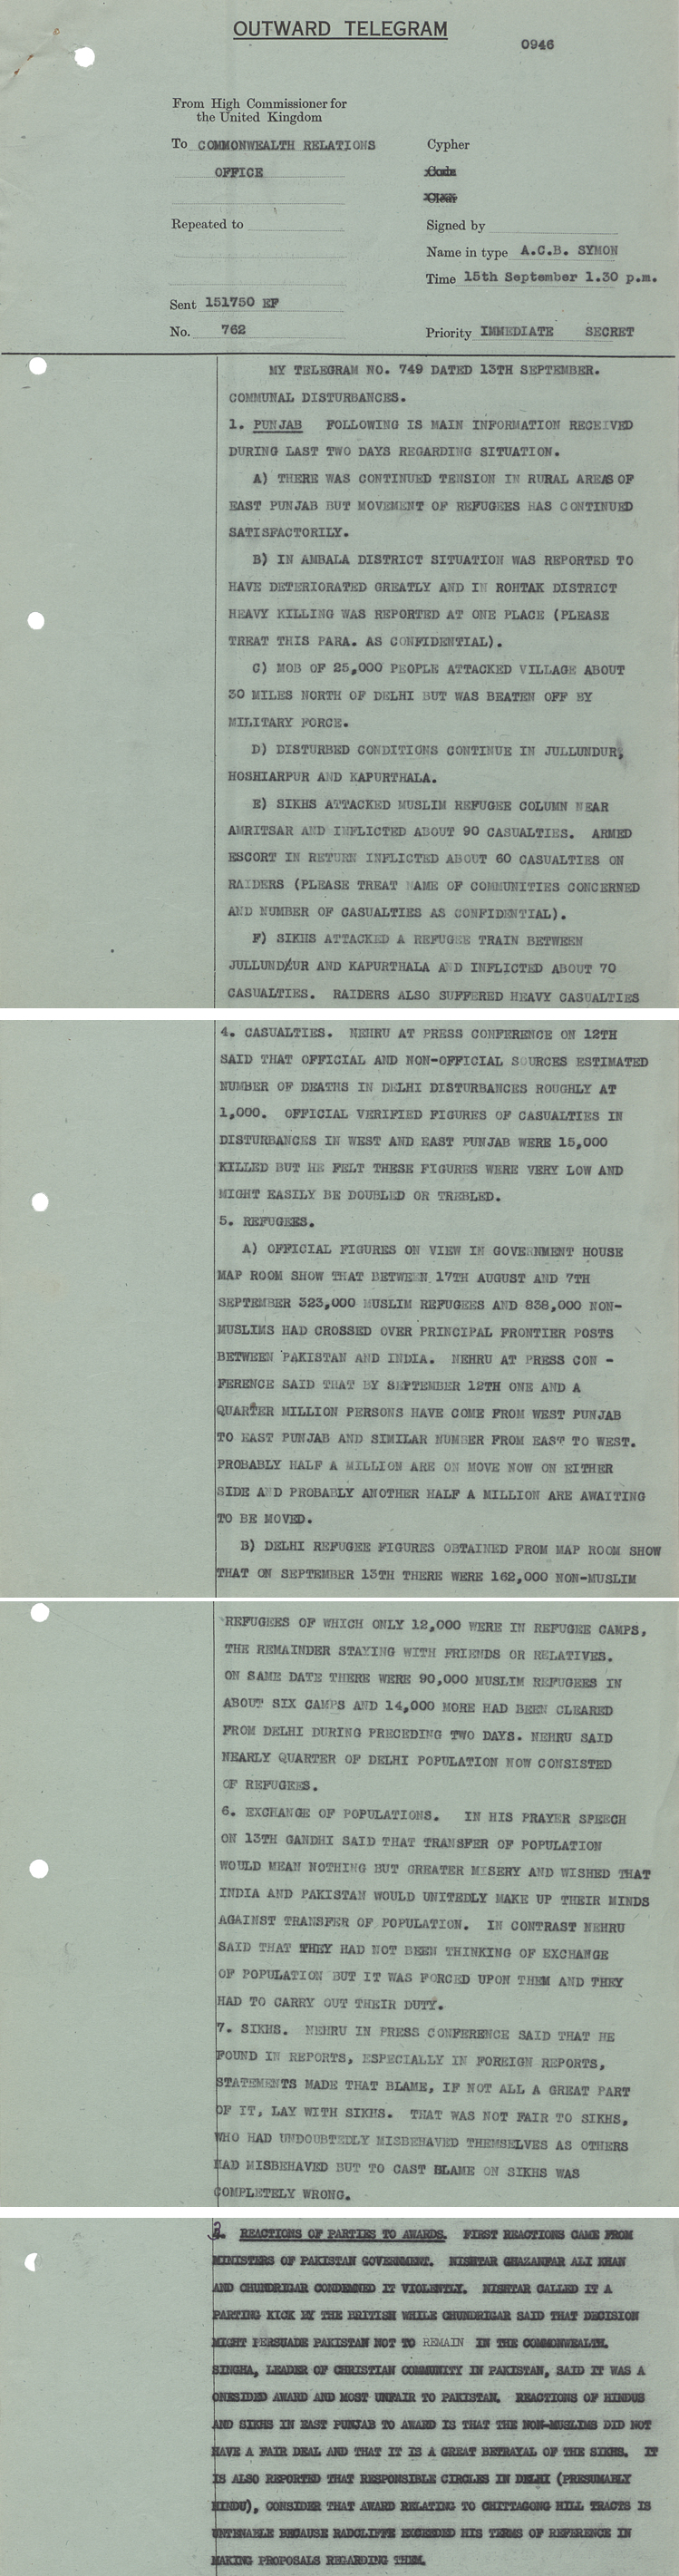 Report on developing partition situation by British High Commisioner in India, 15 September 1947 (DO 133/59)